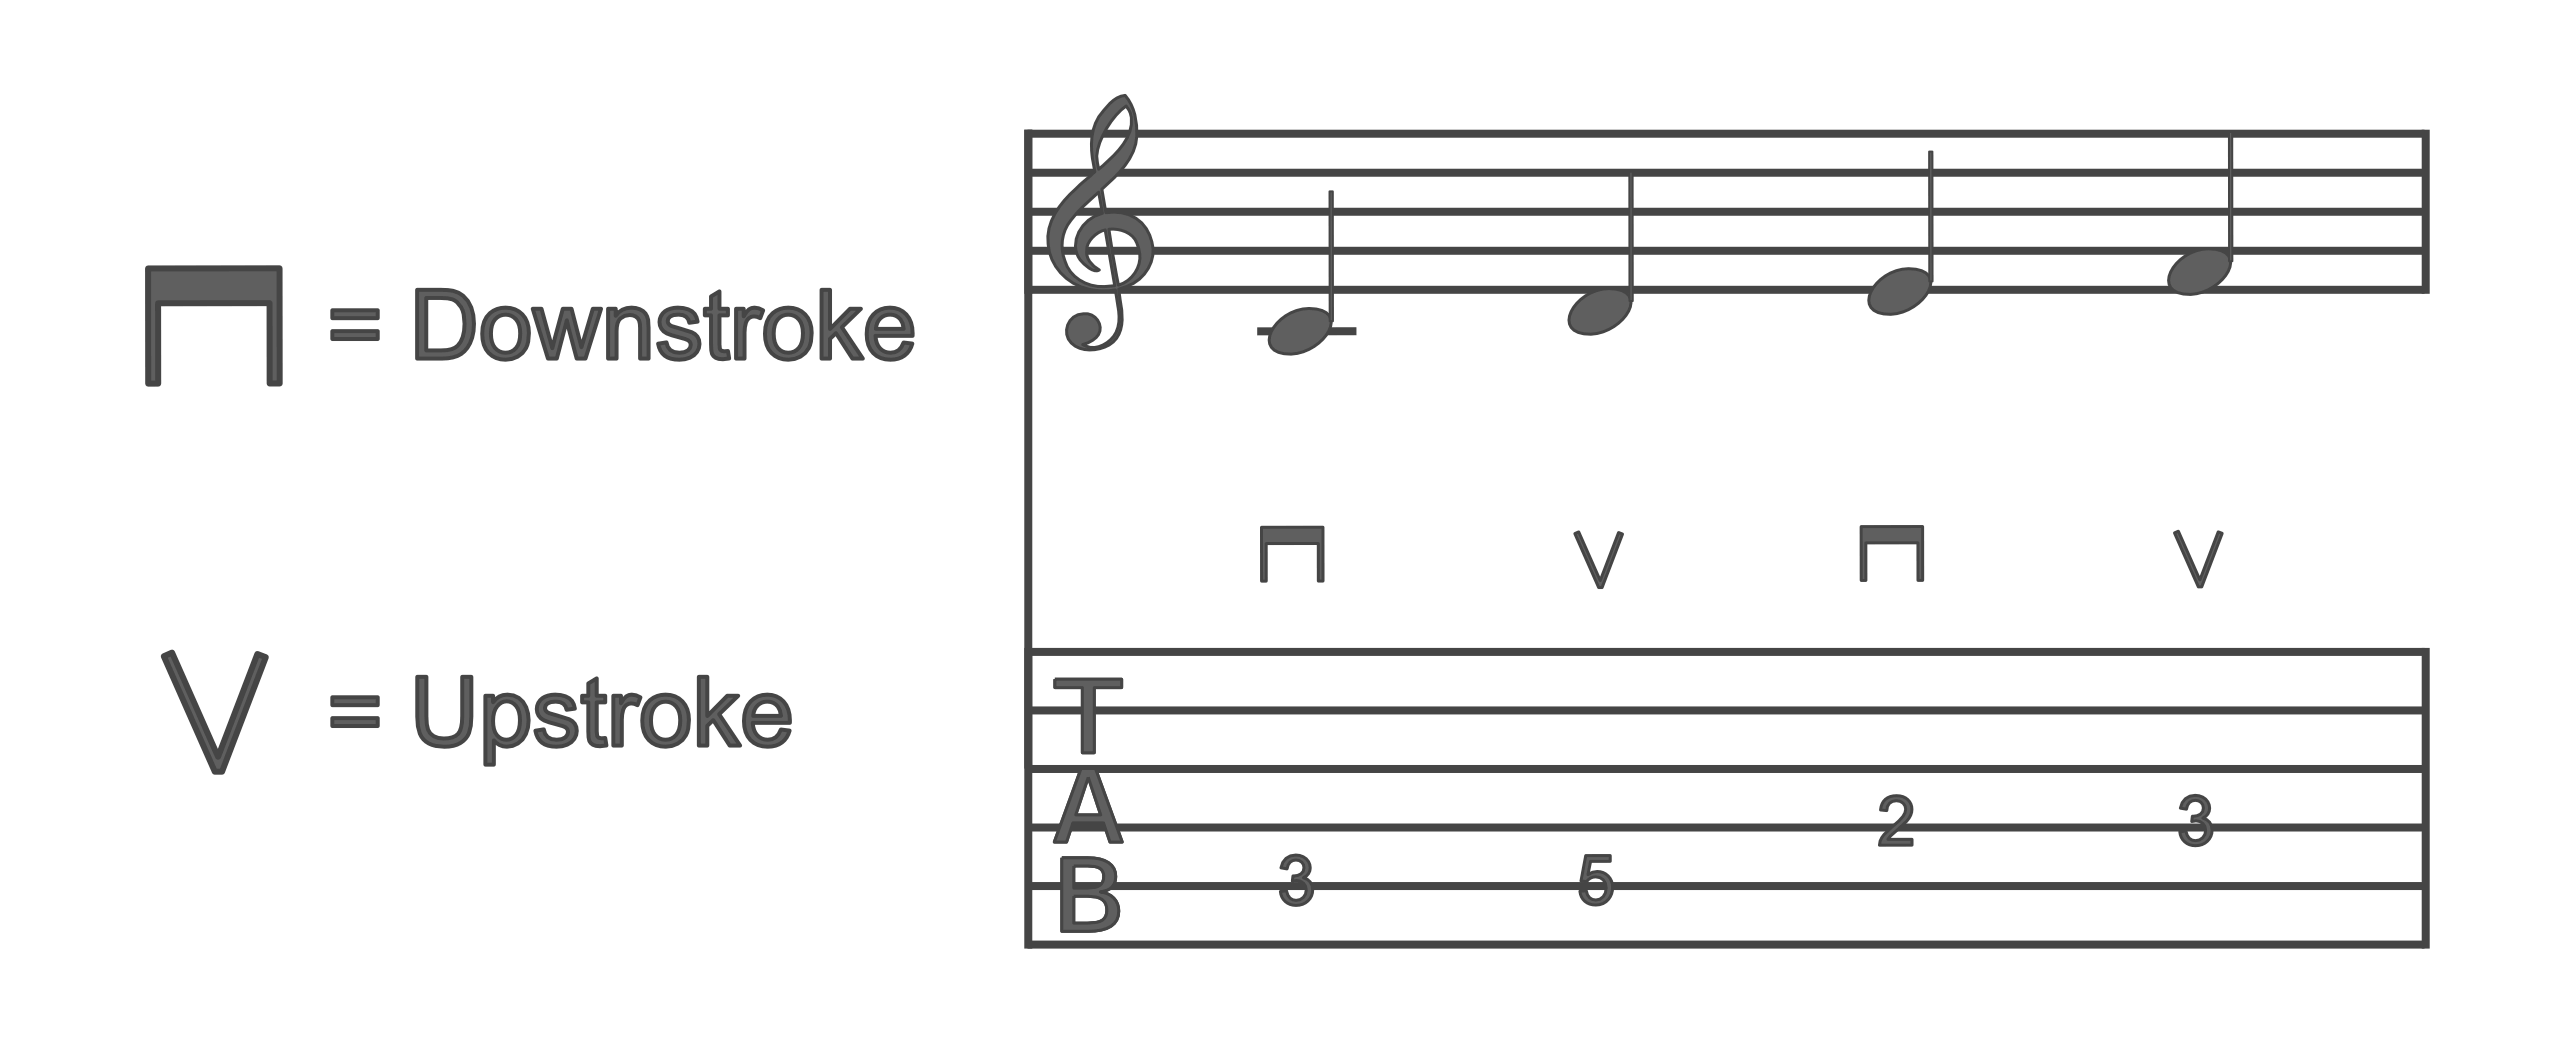 How To Read Tab Sheet Music For Guitar - tabslearn guitar now how to read tabsreading bass sheet ...